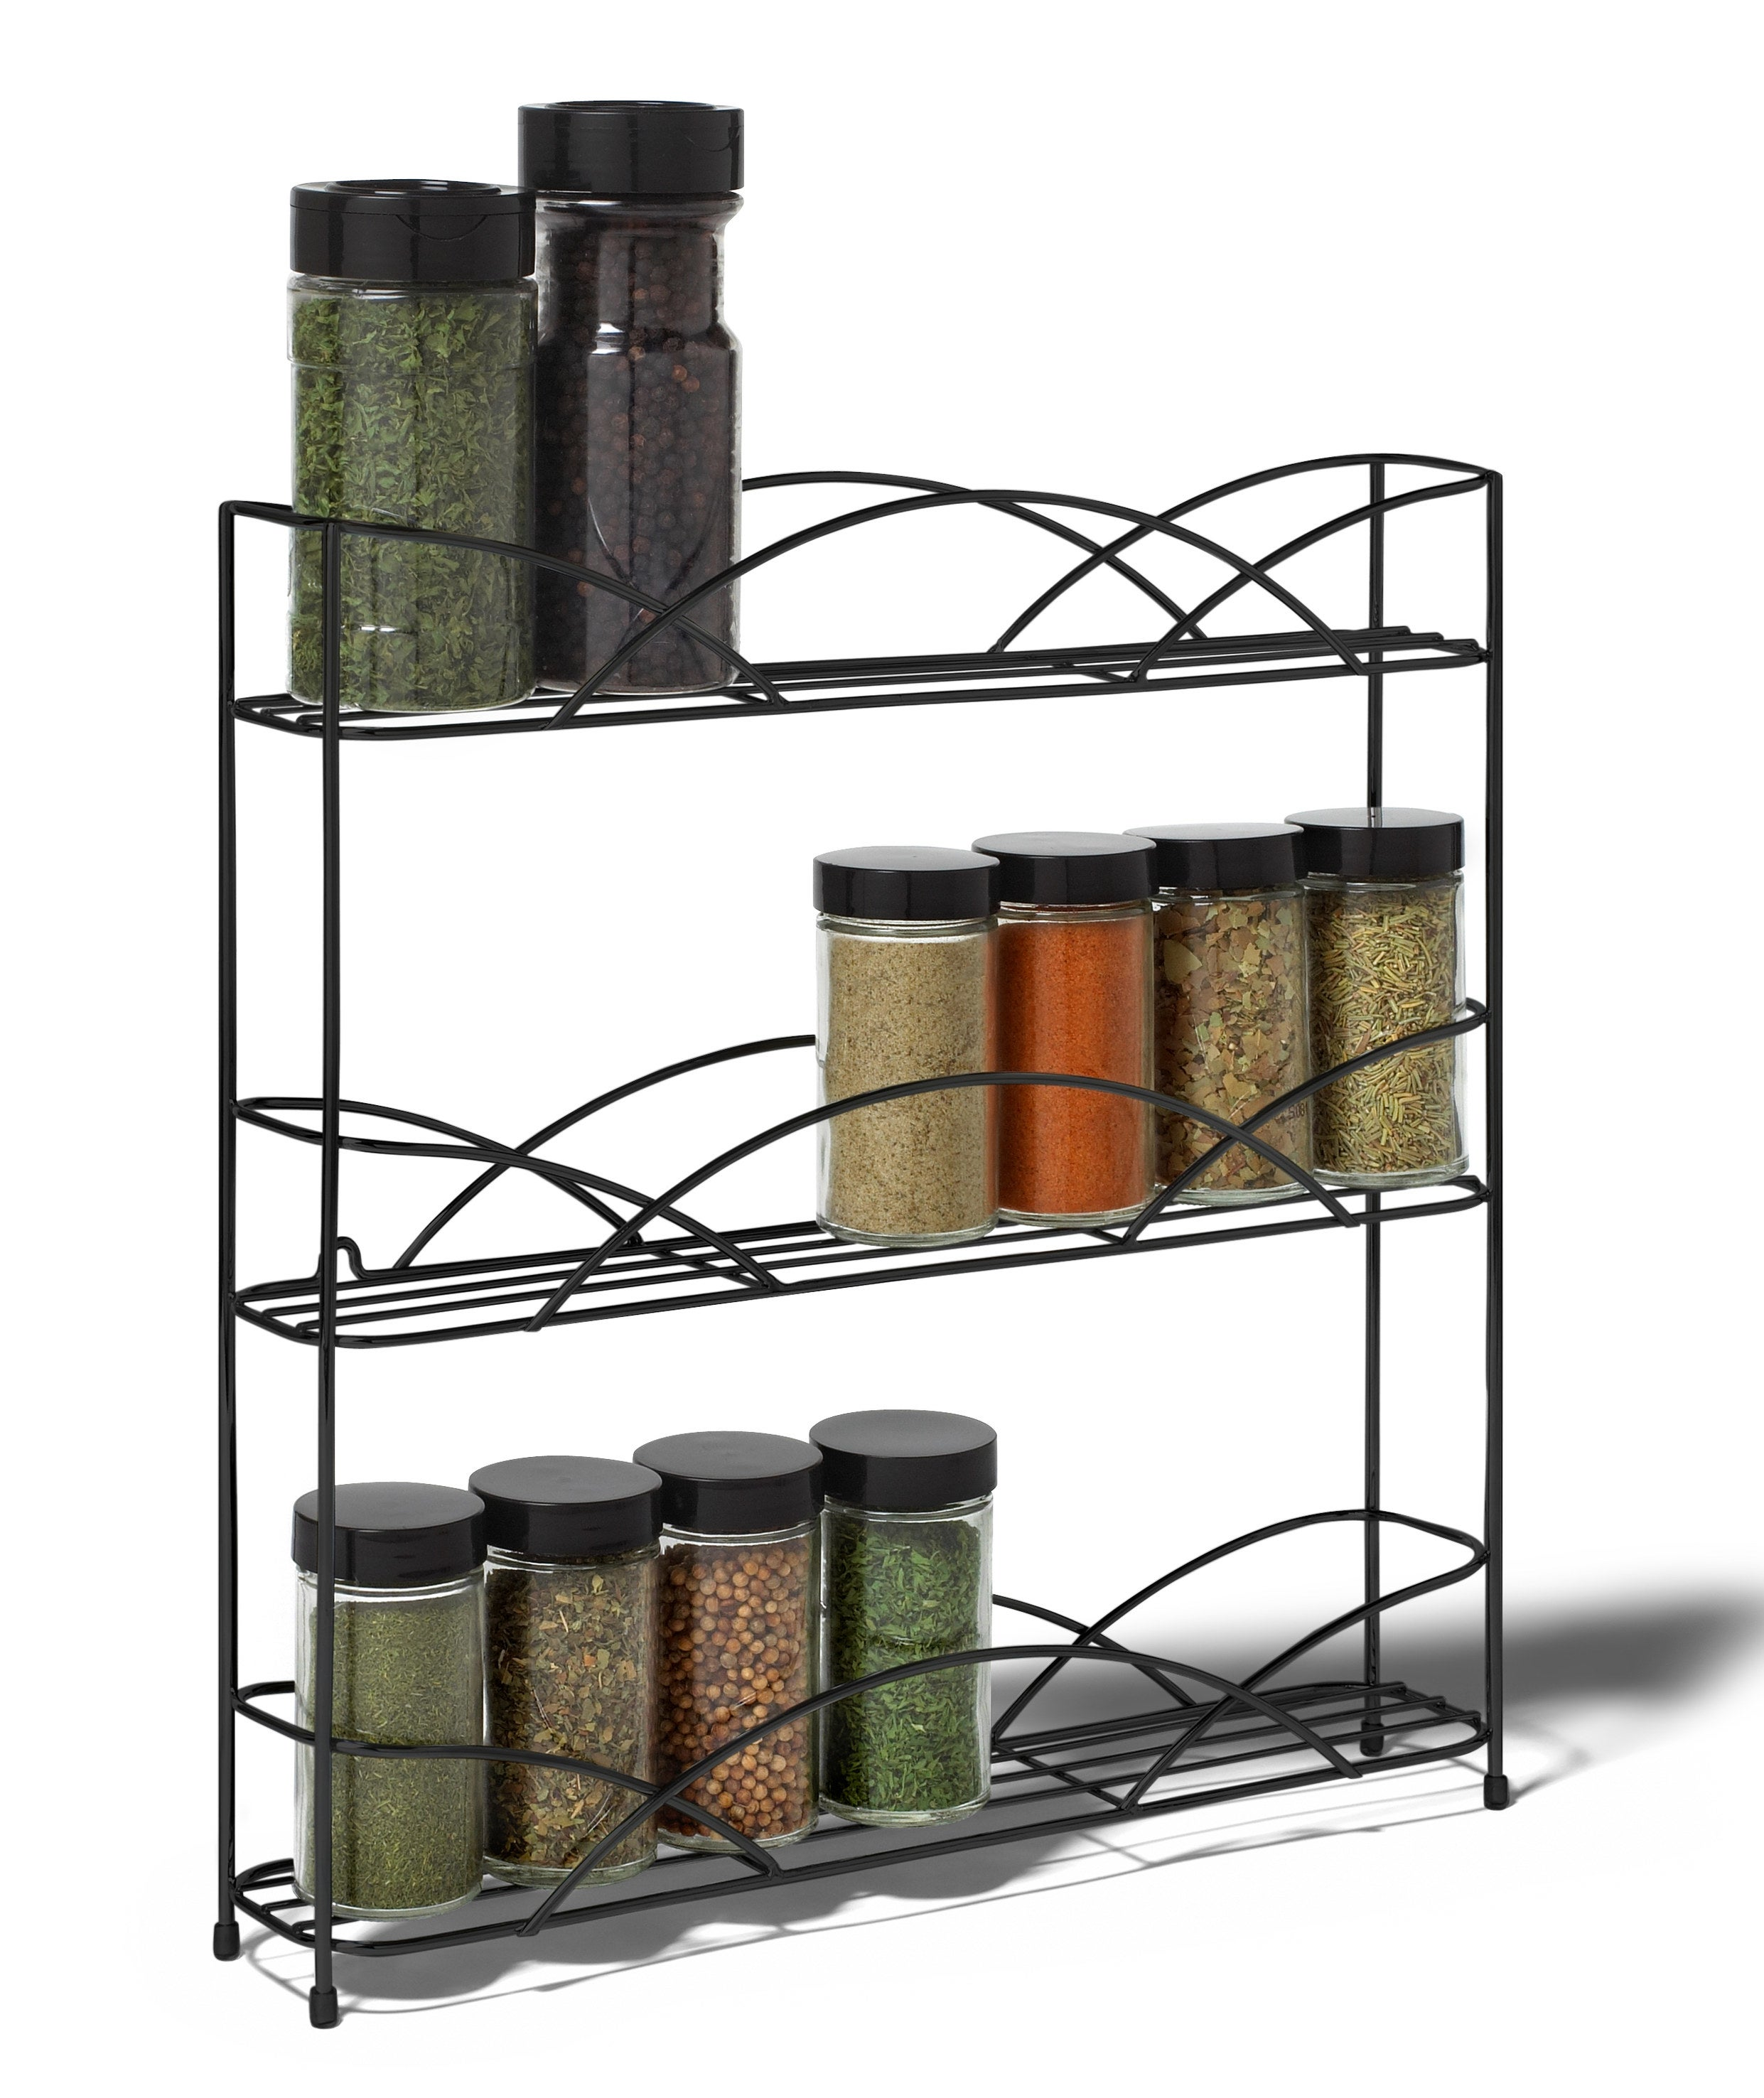 Black spice rack